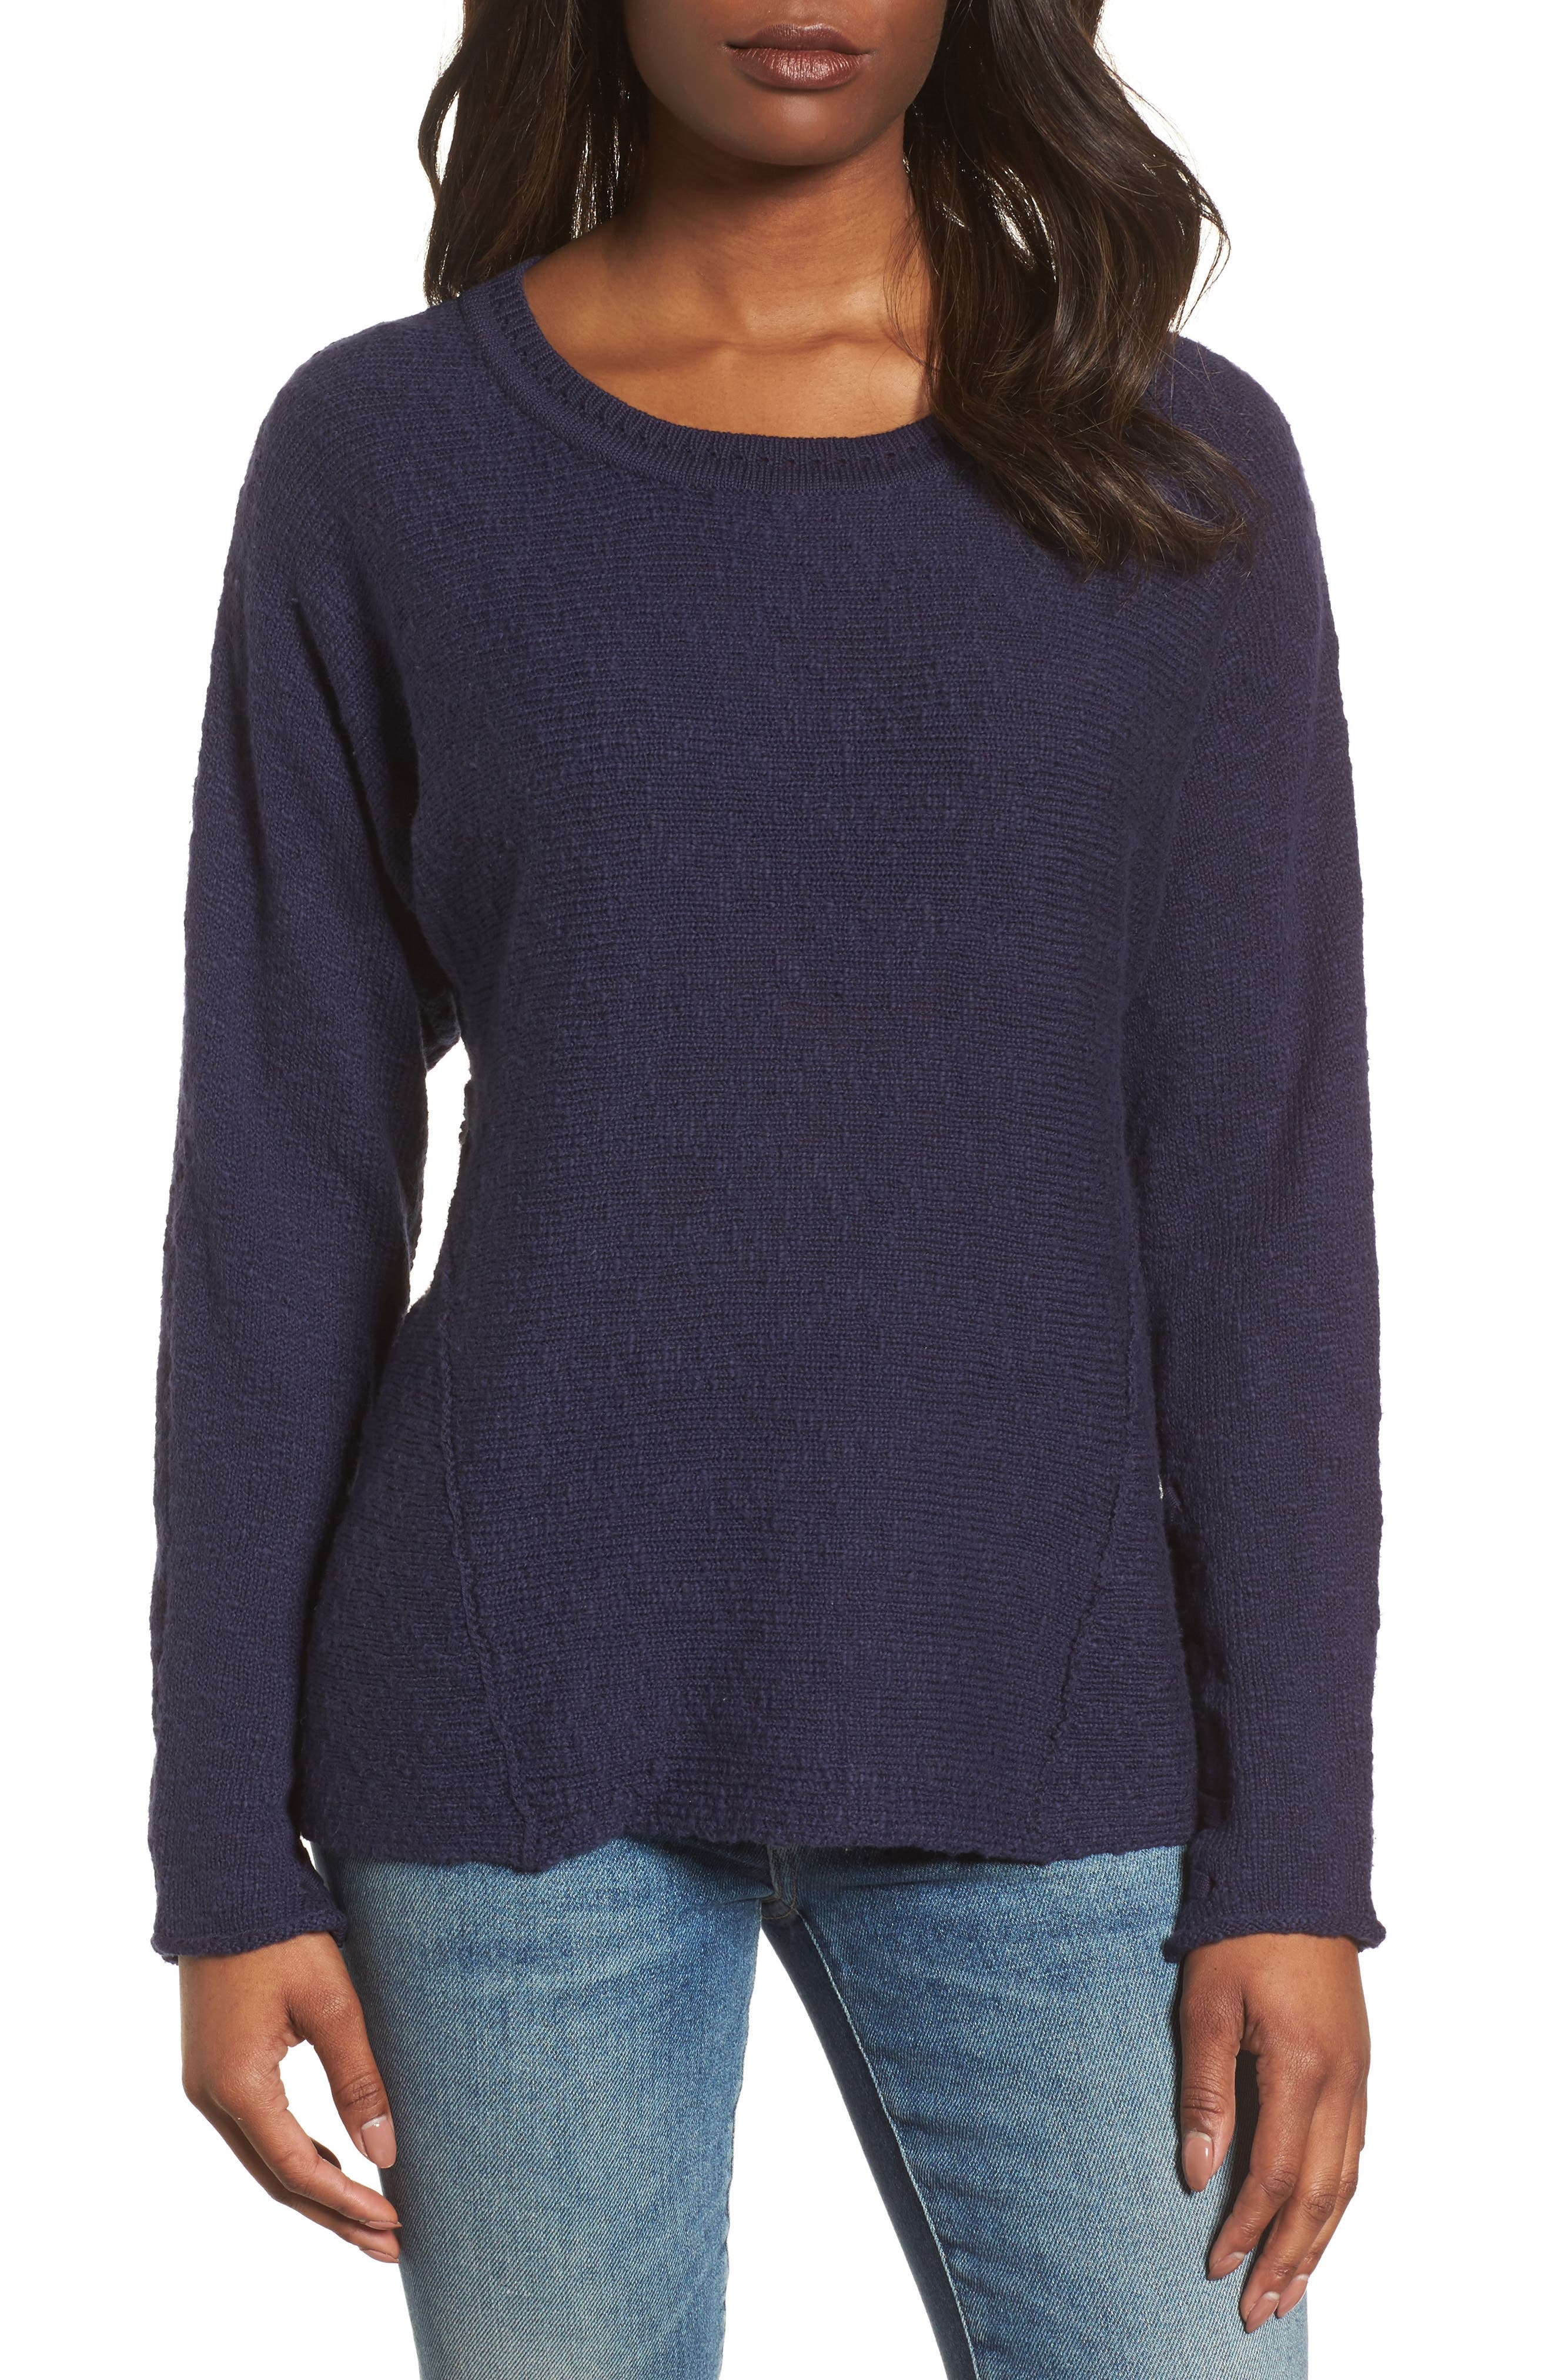 CASLON<SUP>®</SUP>, Mix Stitch Swing Cotton Sweater, Main thumbnail 1, color, NAVY PEACOAT